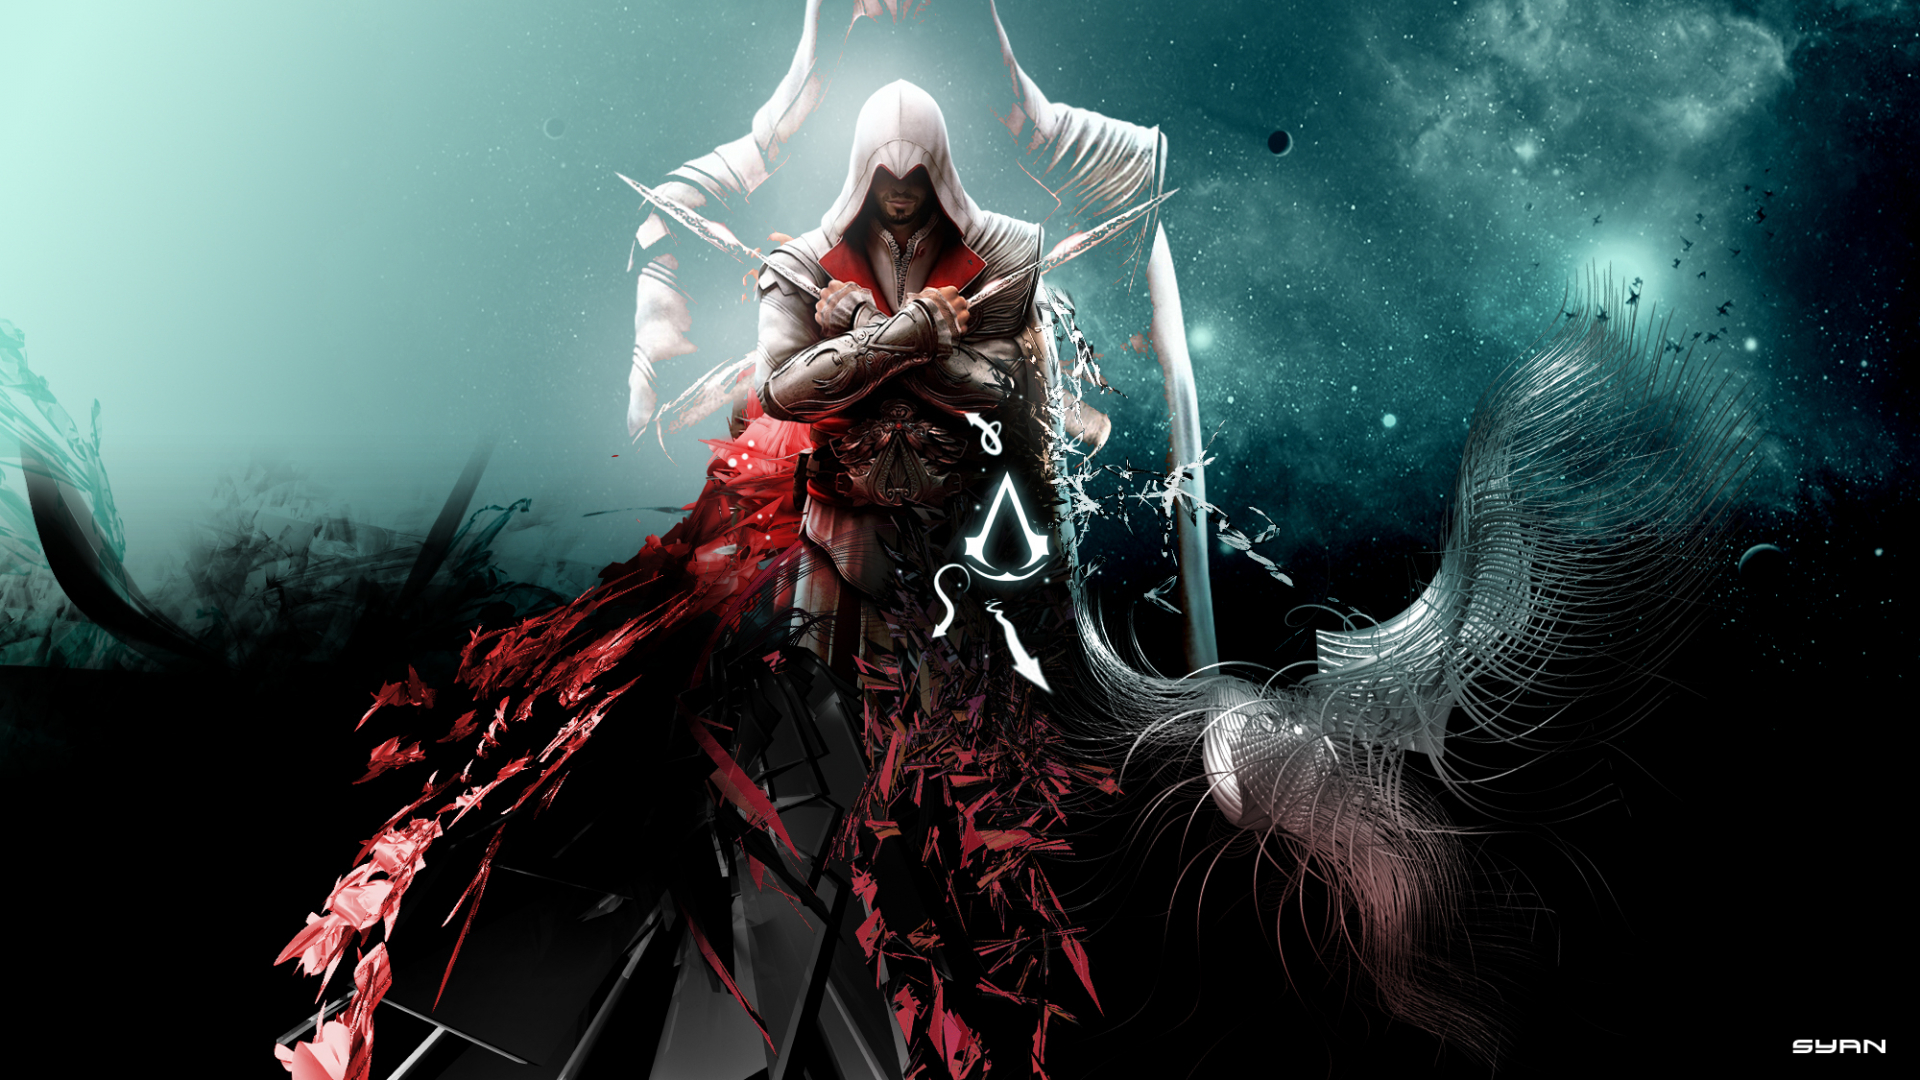 Free Download Assassins Creed All Wallpaper Android 2000x1125